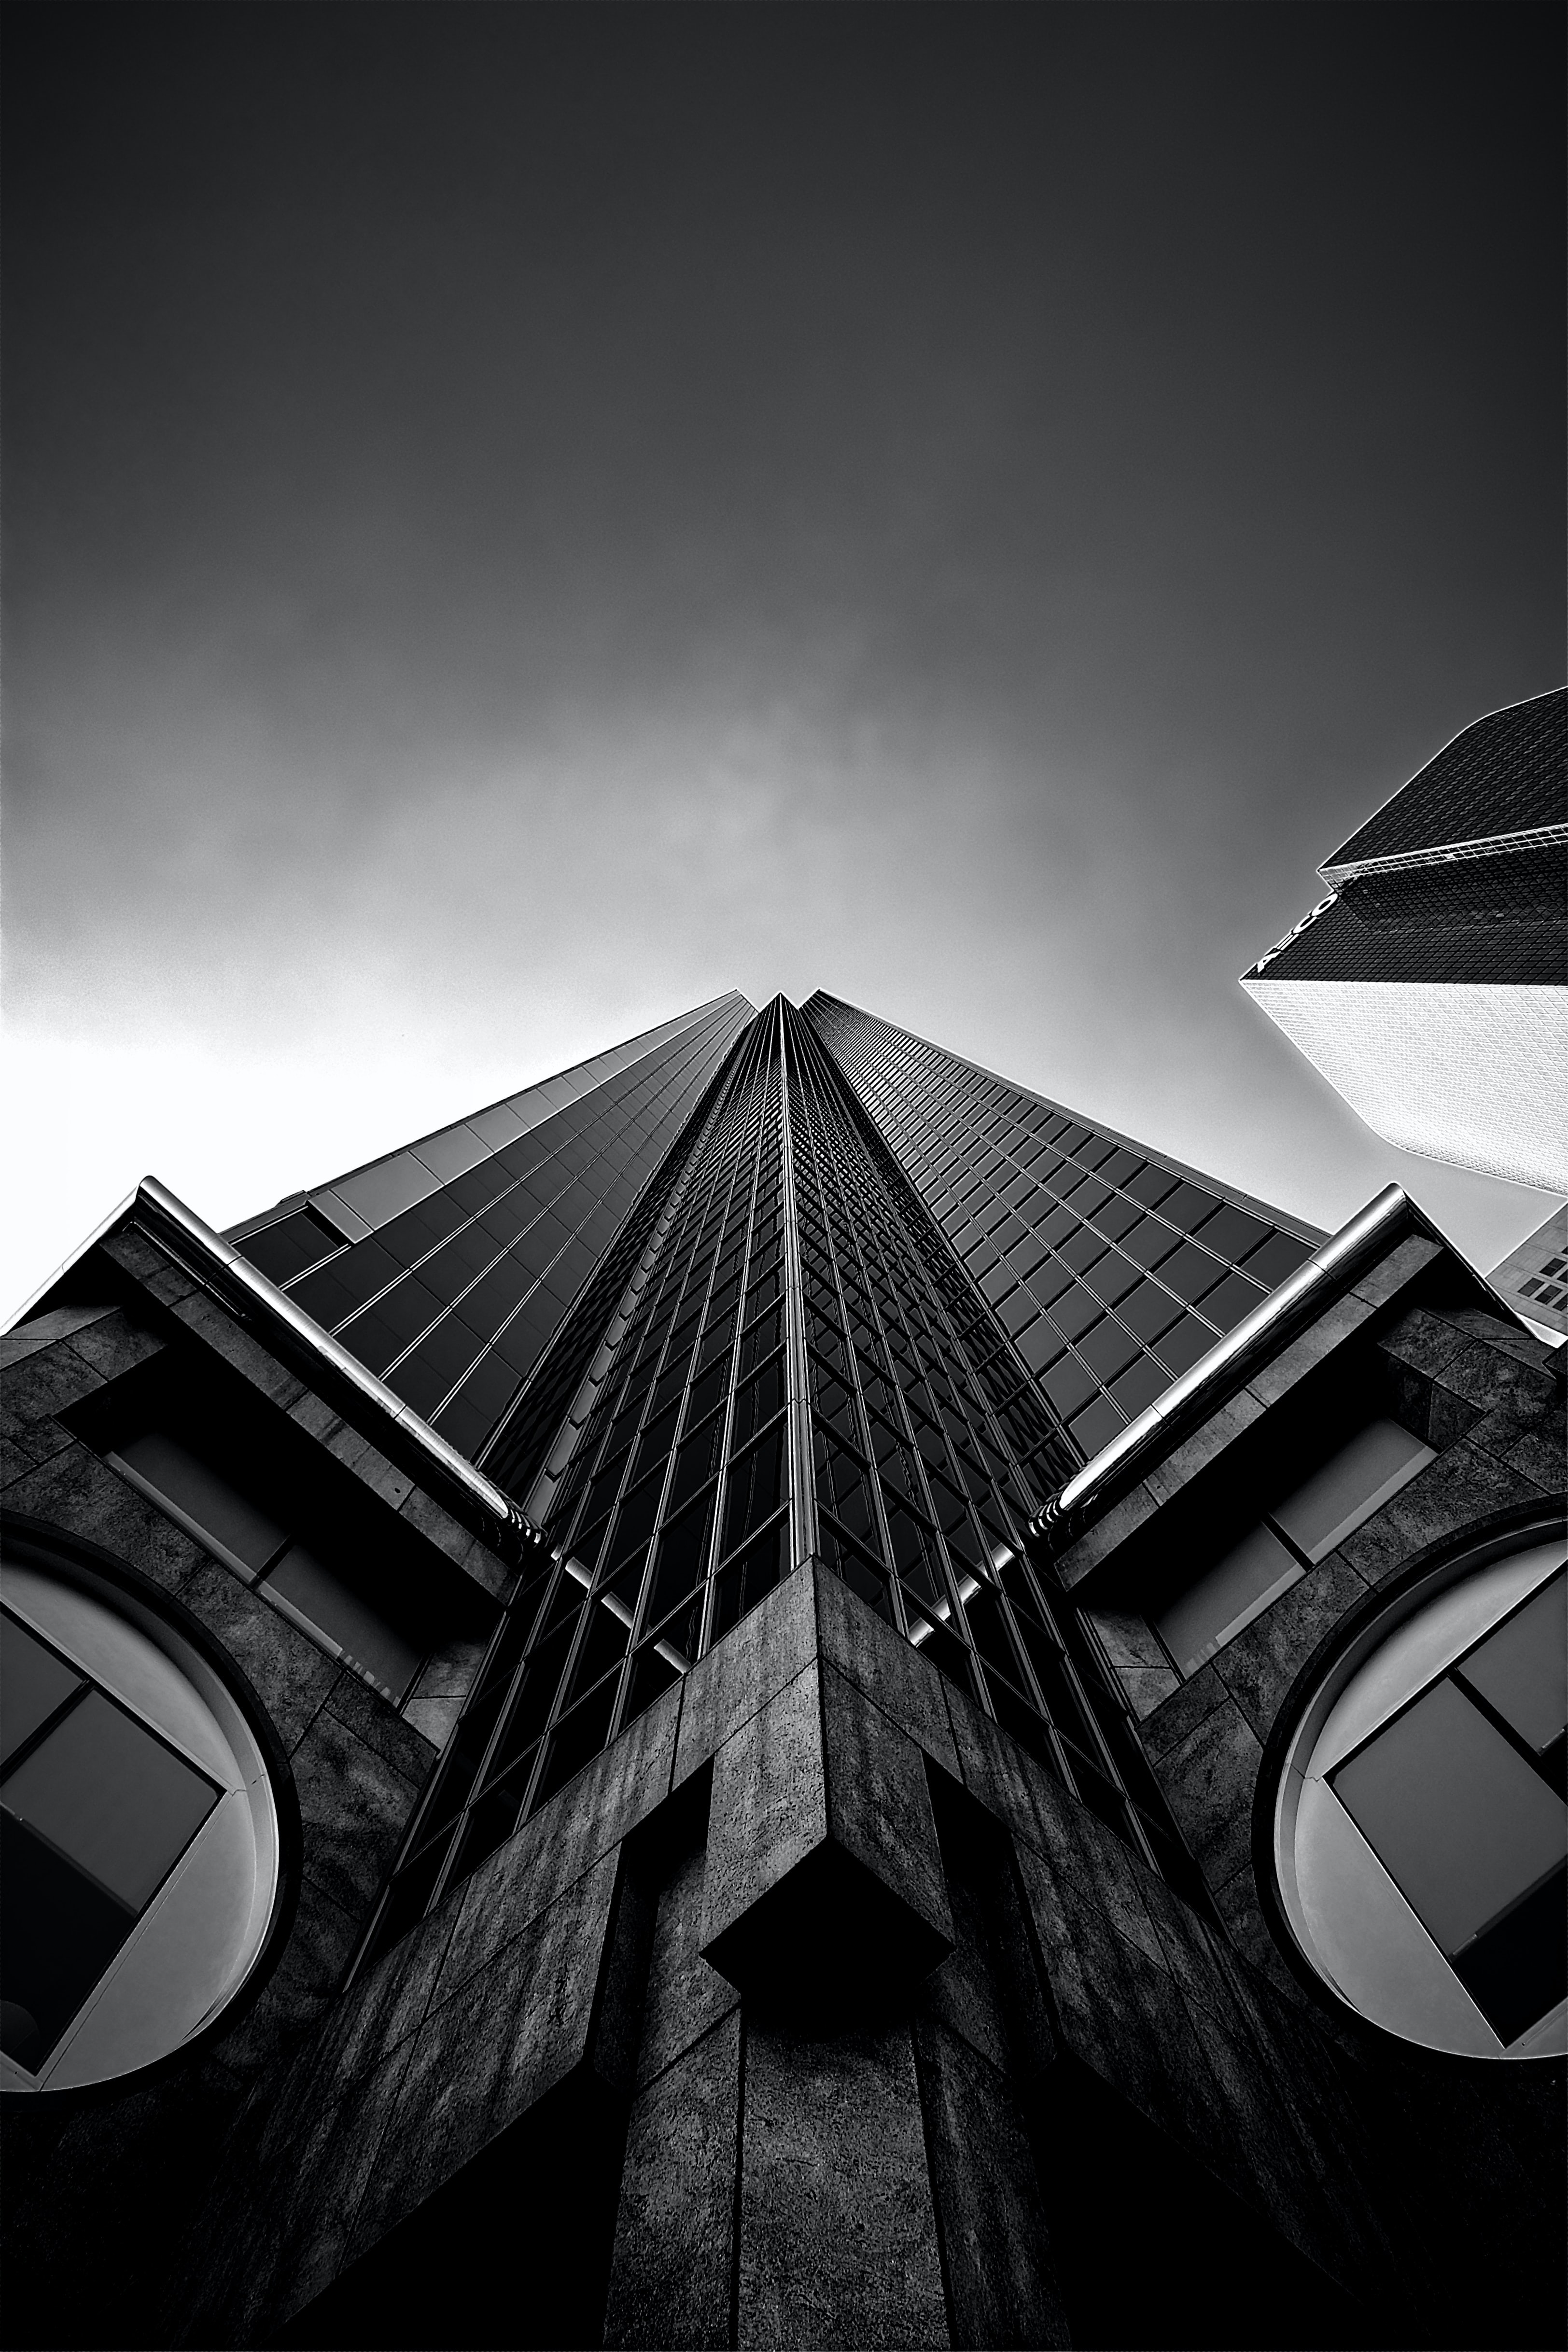 high-rise building greyscale photography